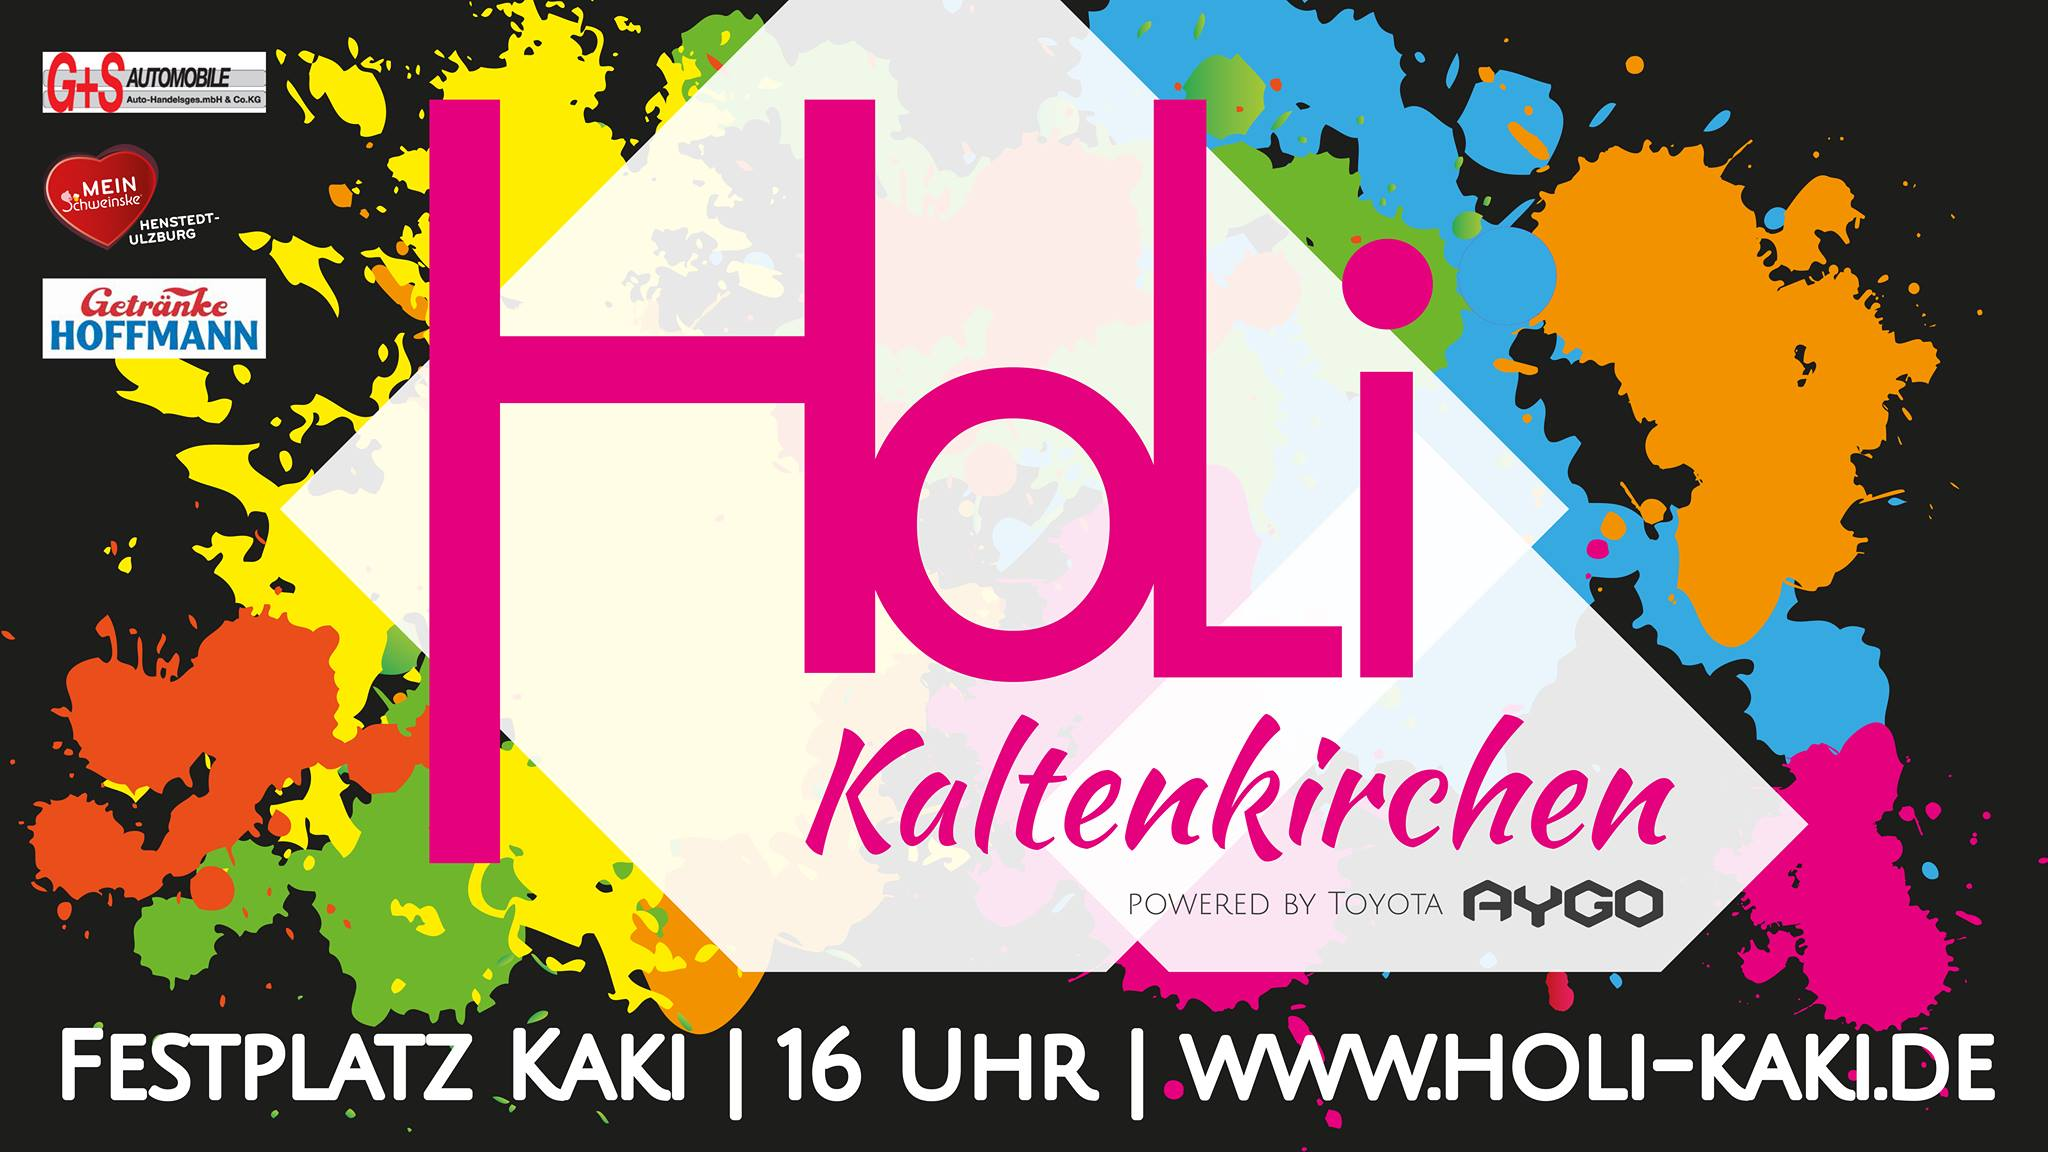 Holi Festival Kaltenkirchen am 25. August 2018 16.00 - 22.00